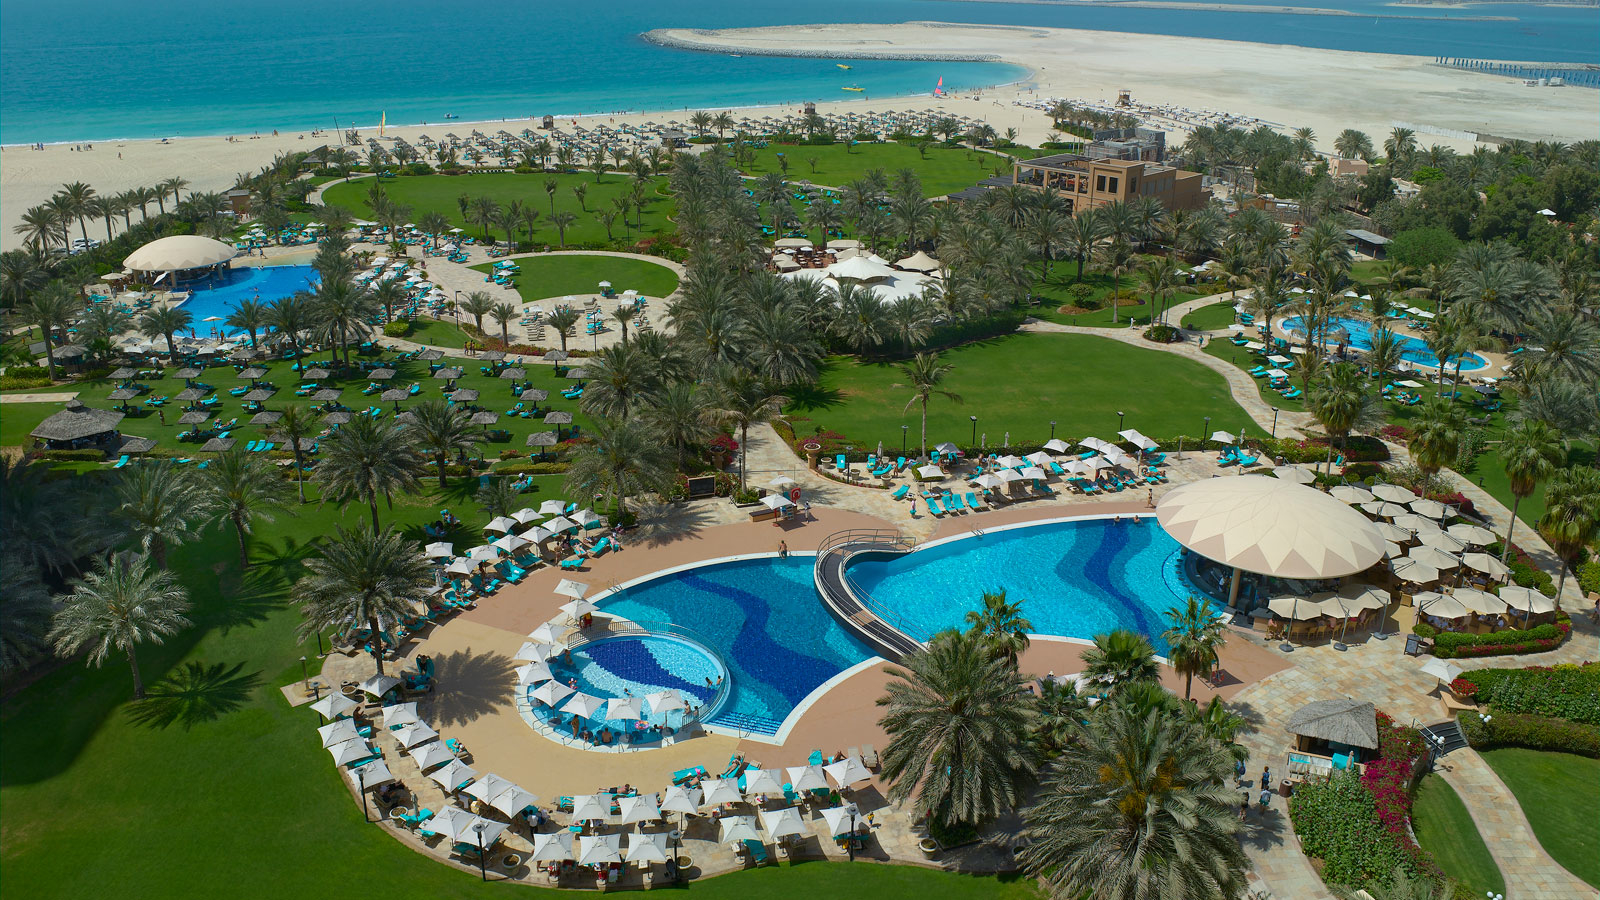 Le-Royal-Meridien-Dubai-Main-Pool